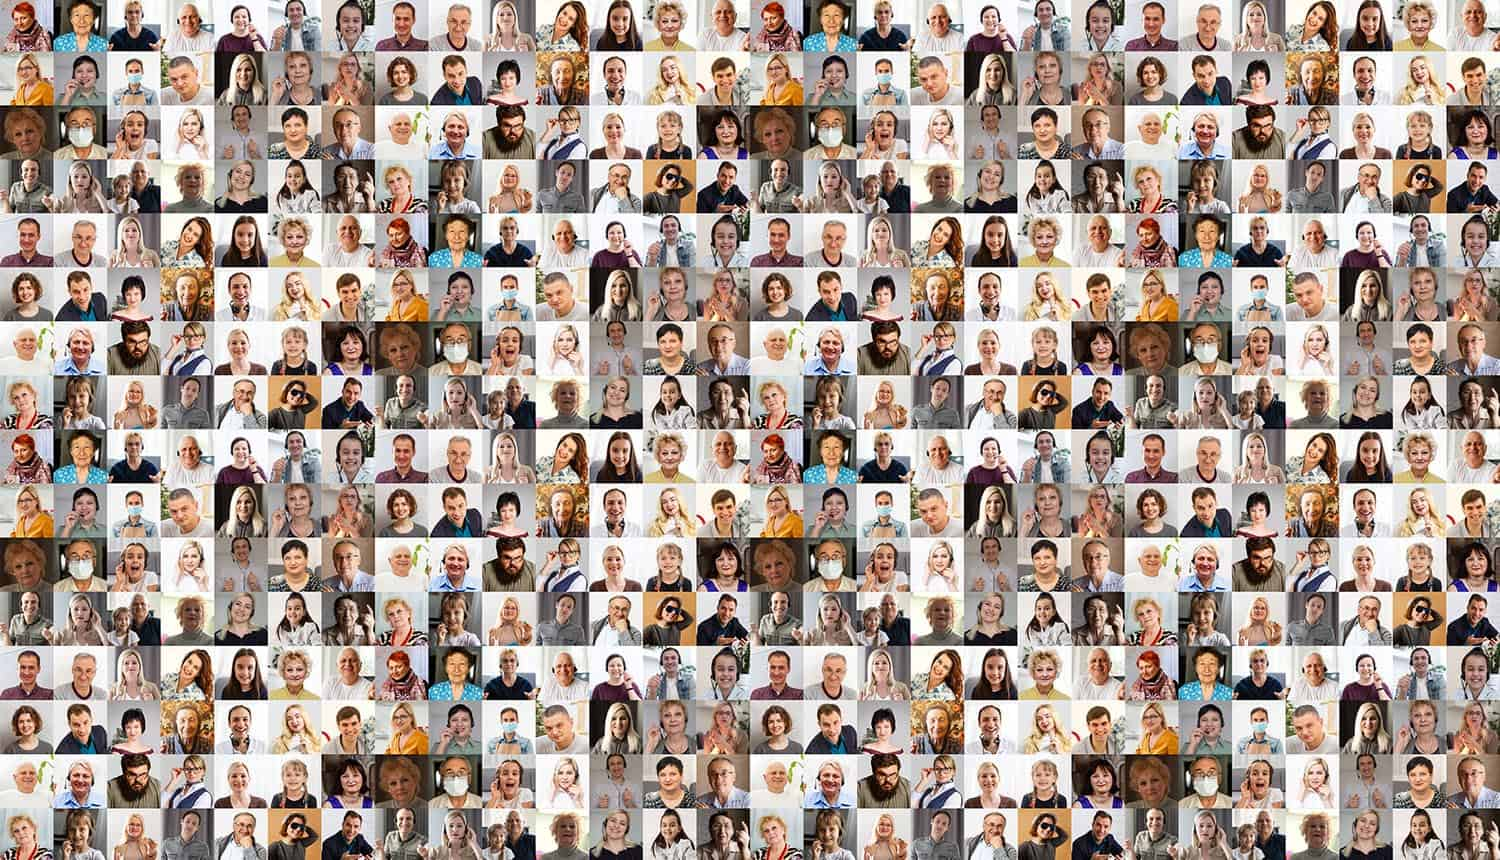 Hundreds of multiracial people crowd headshots showing facial recognition violation of data protection laws